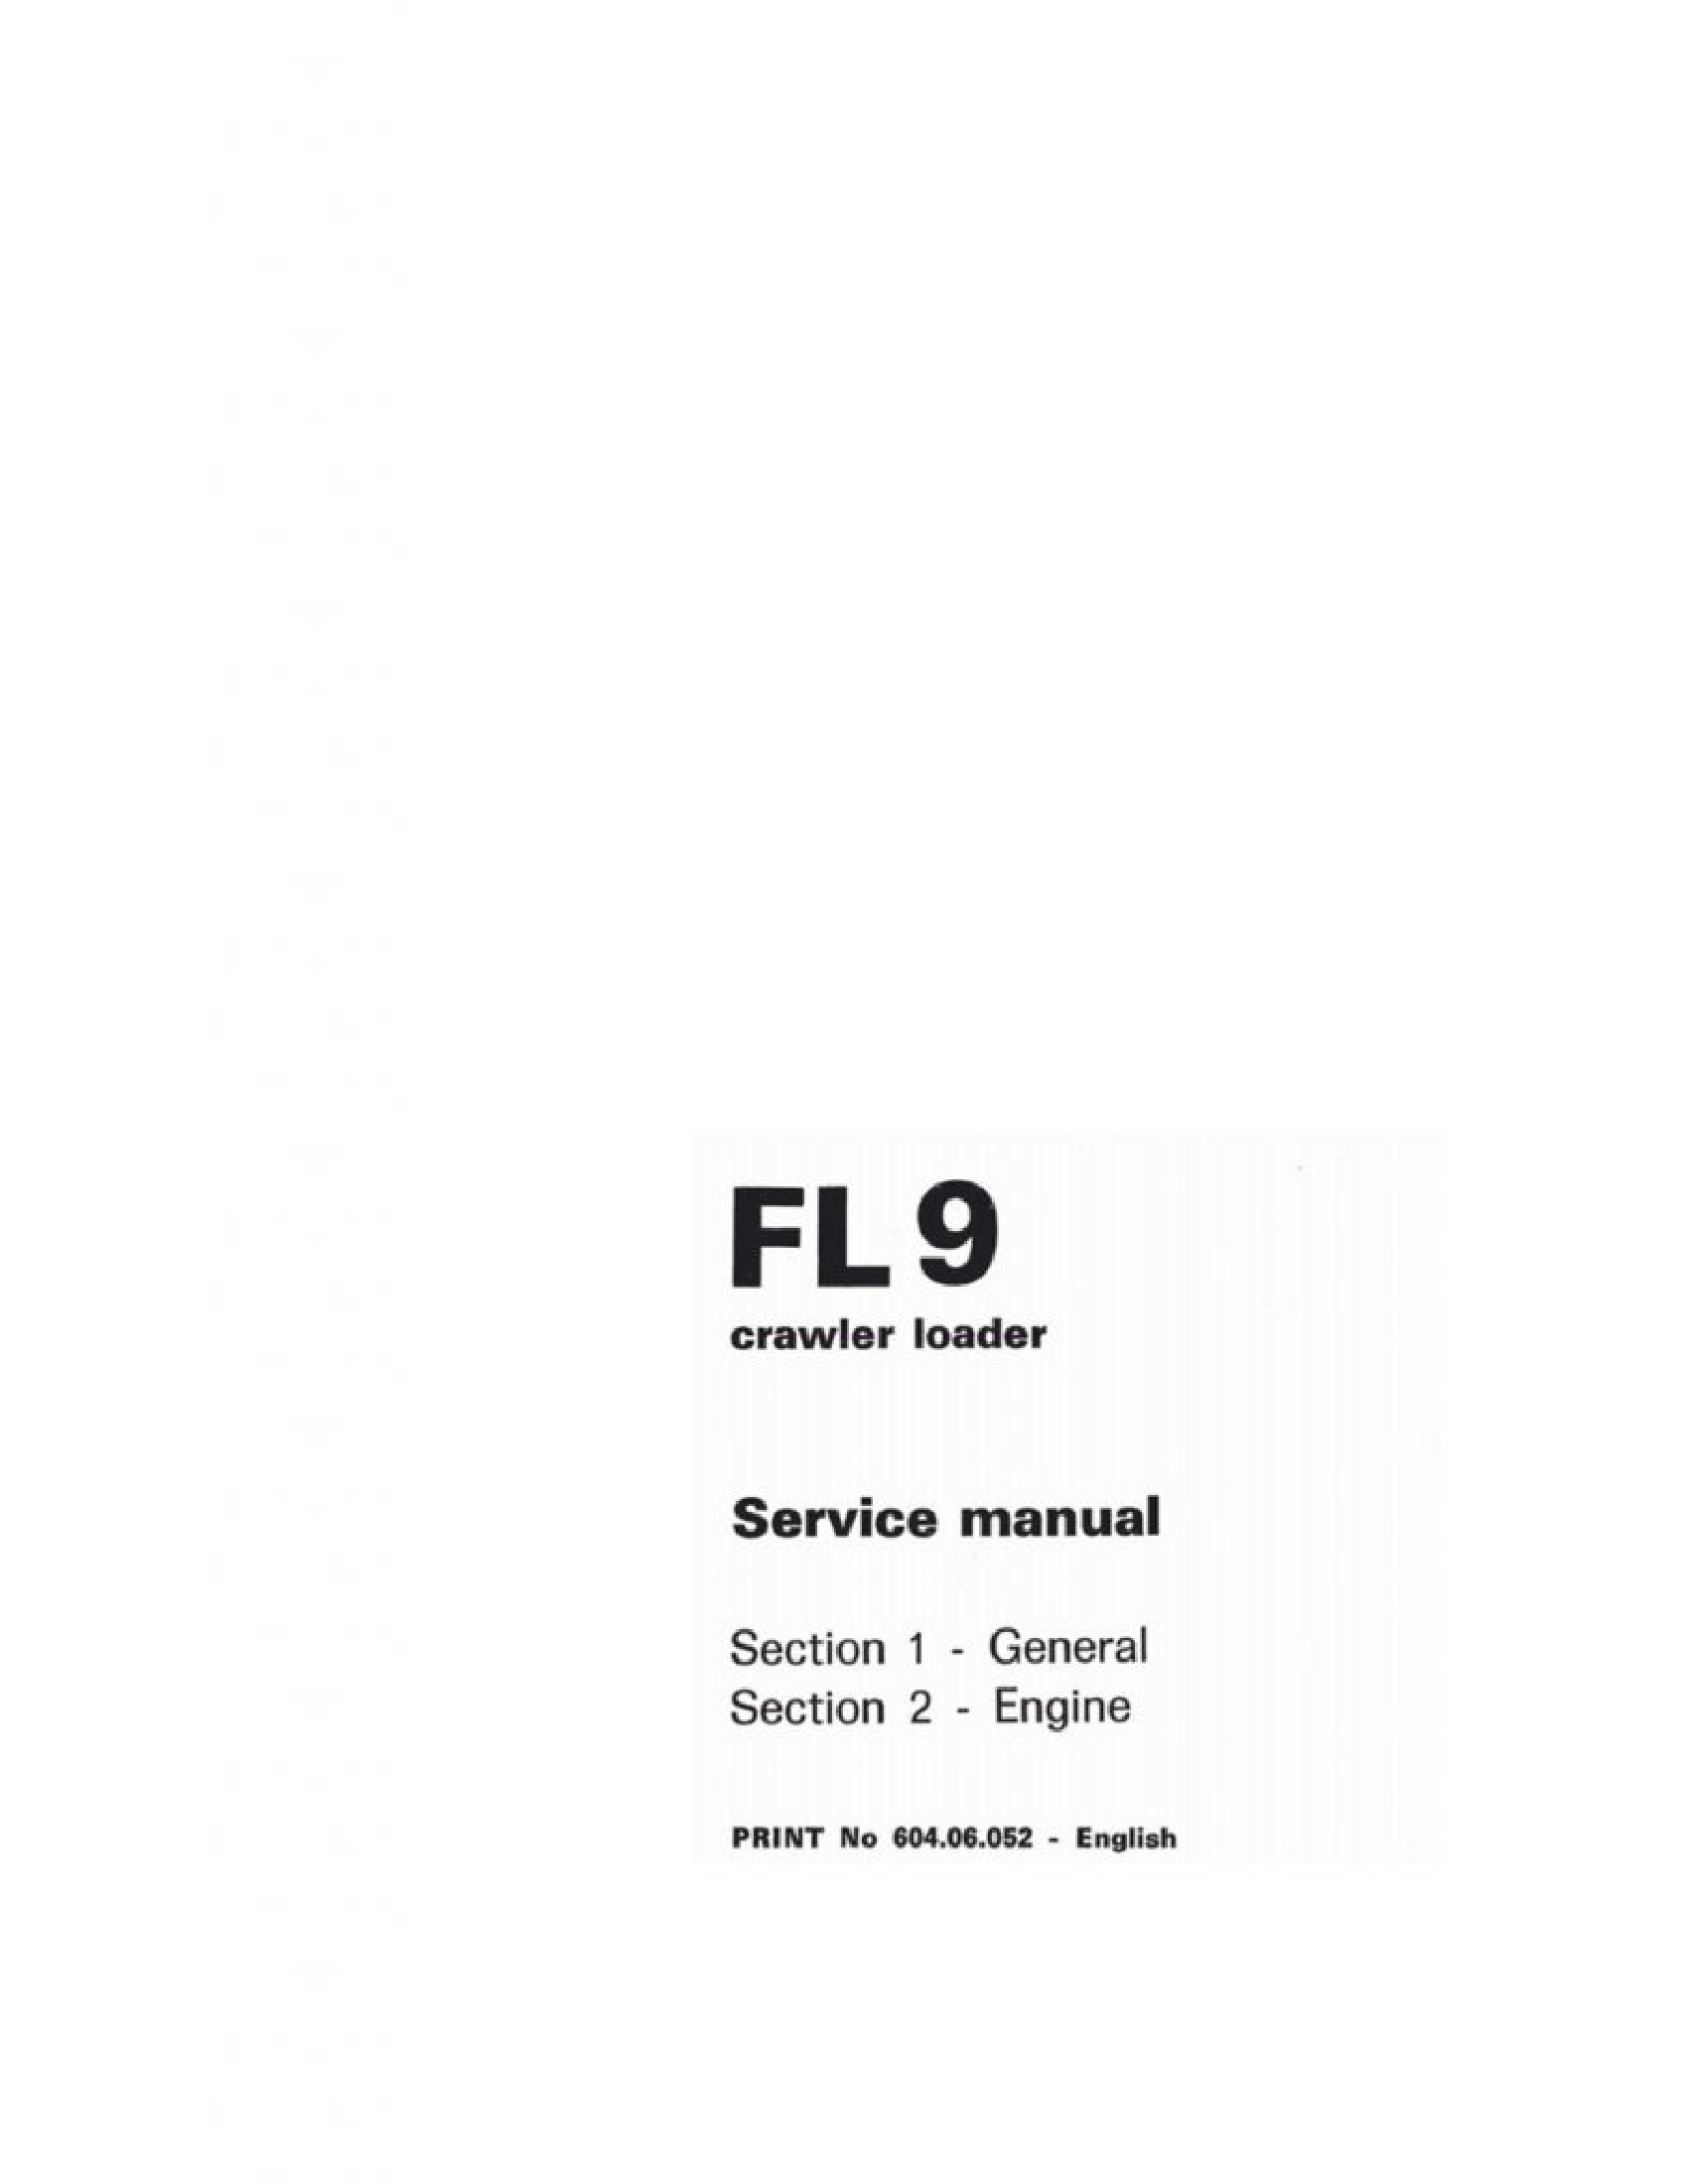 Fiat-Allis 9 FL Crawler Loader manual